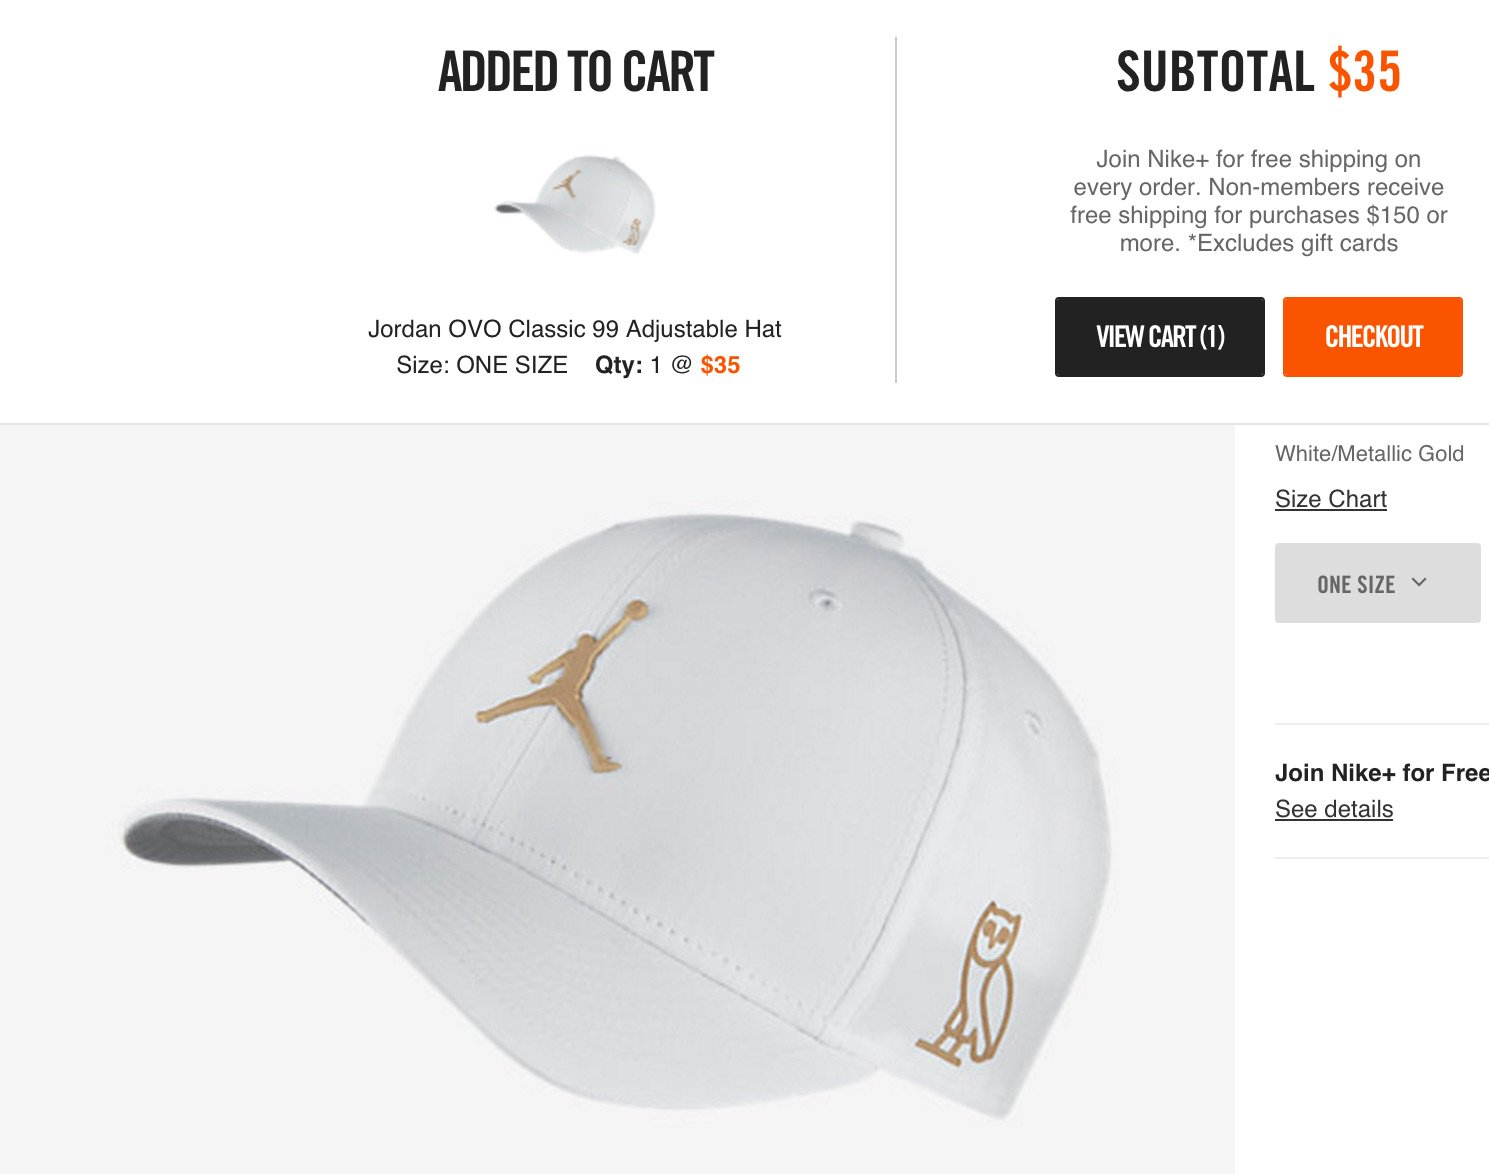 e6403a6656d ... wholesale j23 iphone app on twitter white jordan ovo classic 99 hat  straight to cart on ...